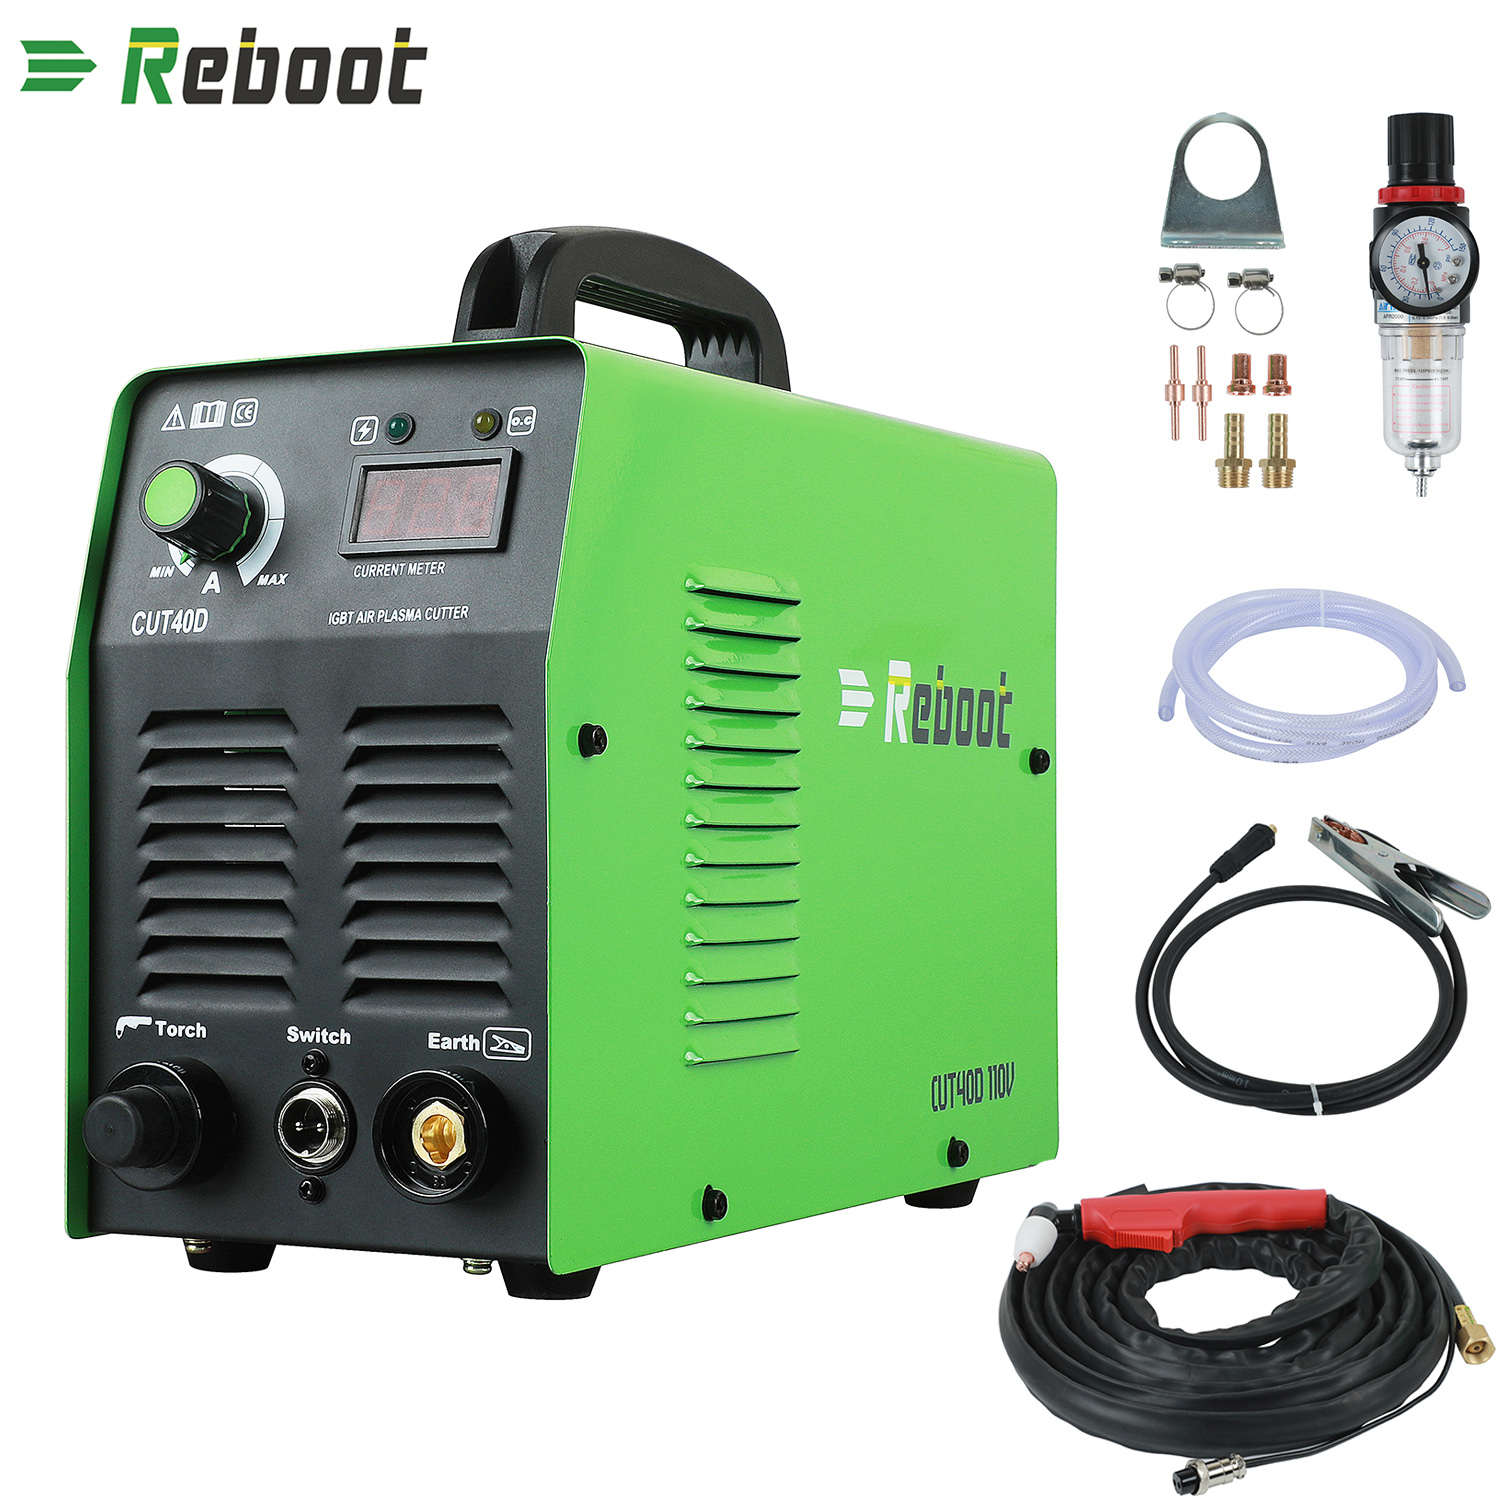 Reboot 1 Air Plasma Cutter CUT 40 Plasma Welders Cutting Machine With Torch Accessories Aluminum Cutter Cut All Steel EU/US Plug